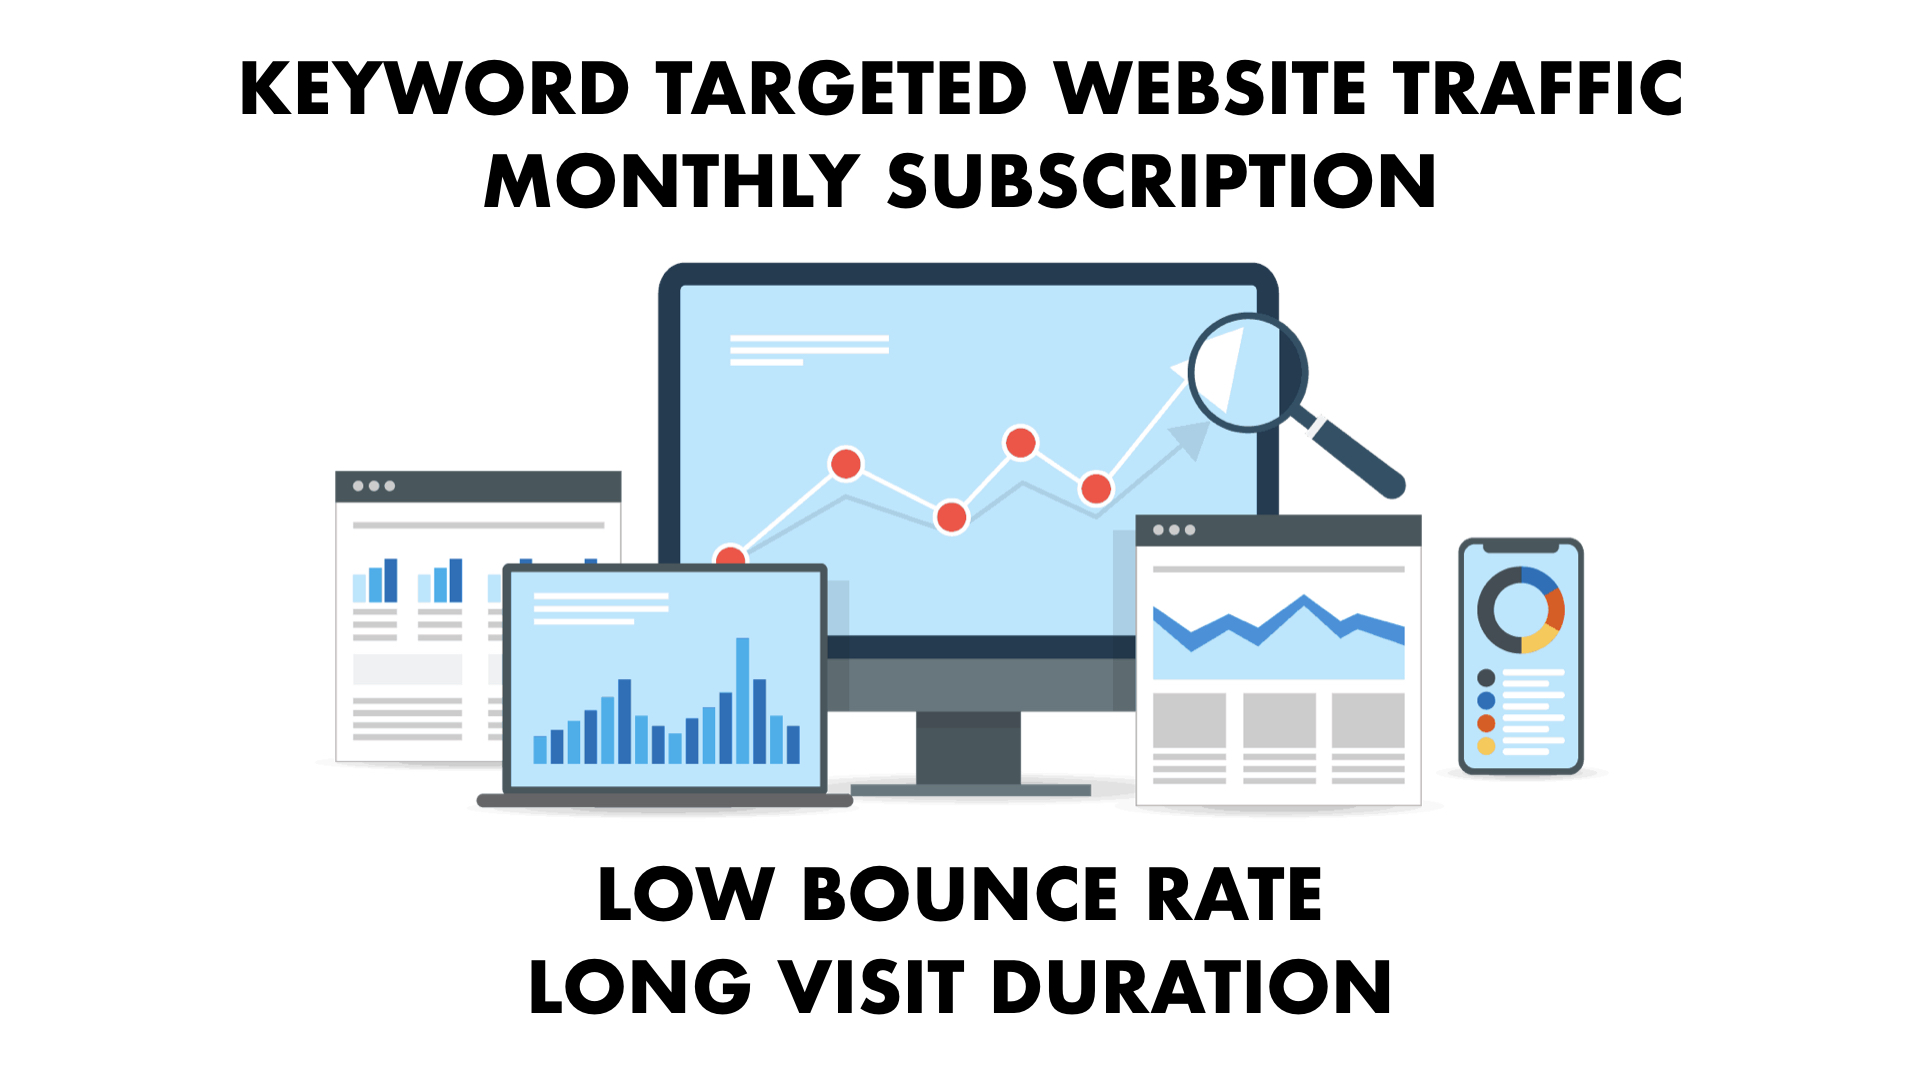 UNLIMITED KEYWORD TARGETED Traffic with Low Bounce Rate and Long Visit Duration